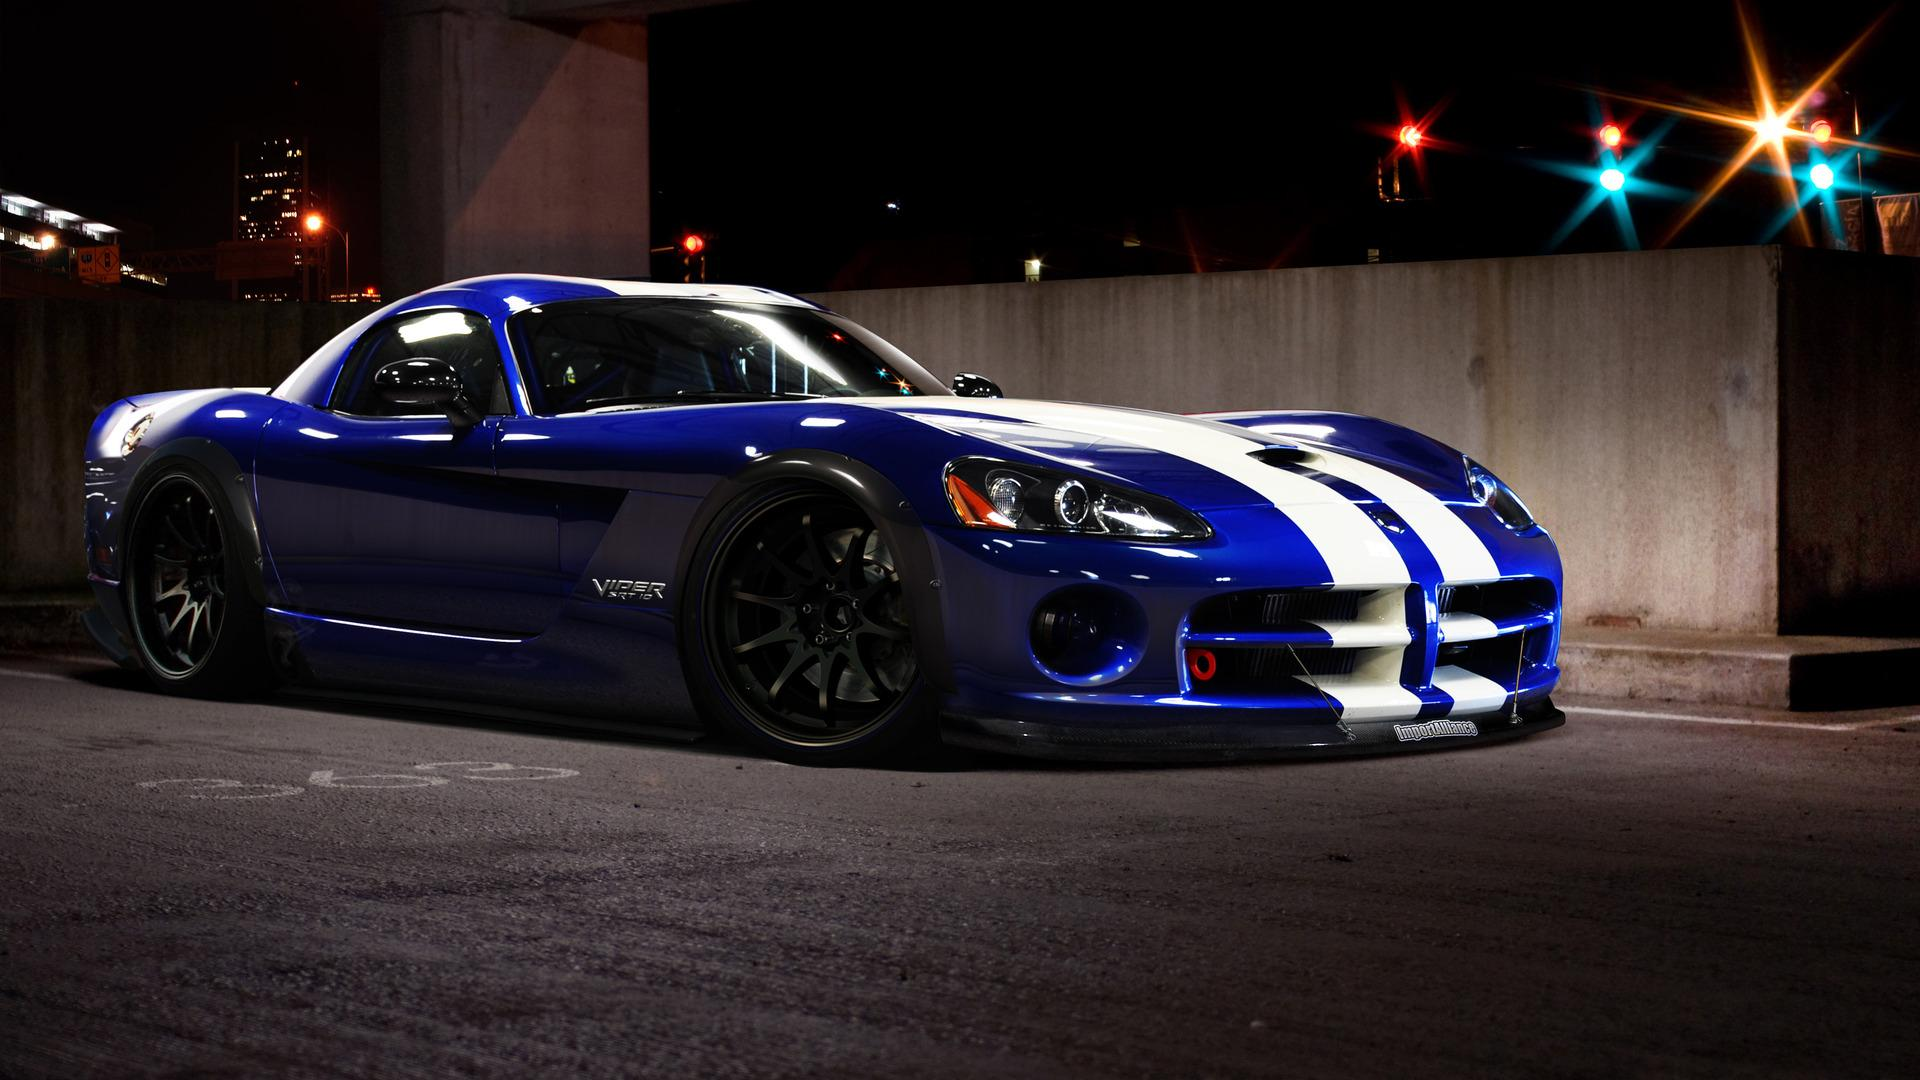 Blue Dodge Charger Srt8 Wallpapers Top Free Blue Dodge Charger